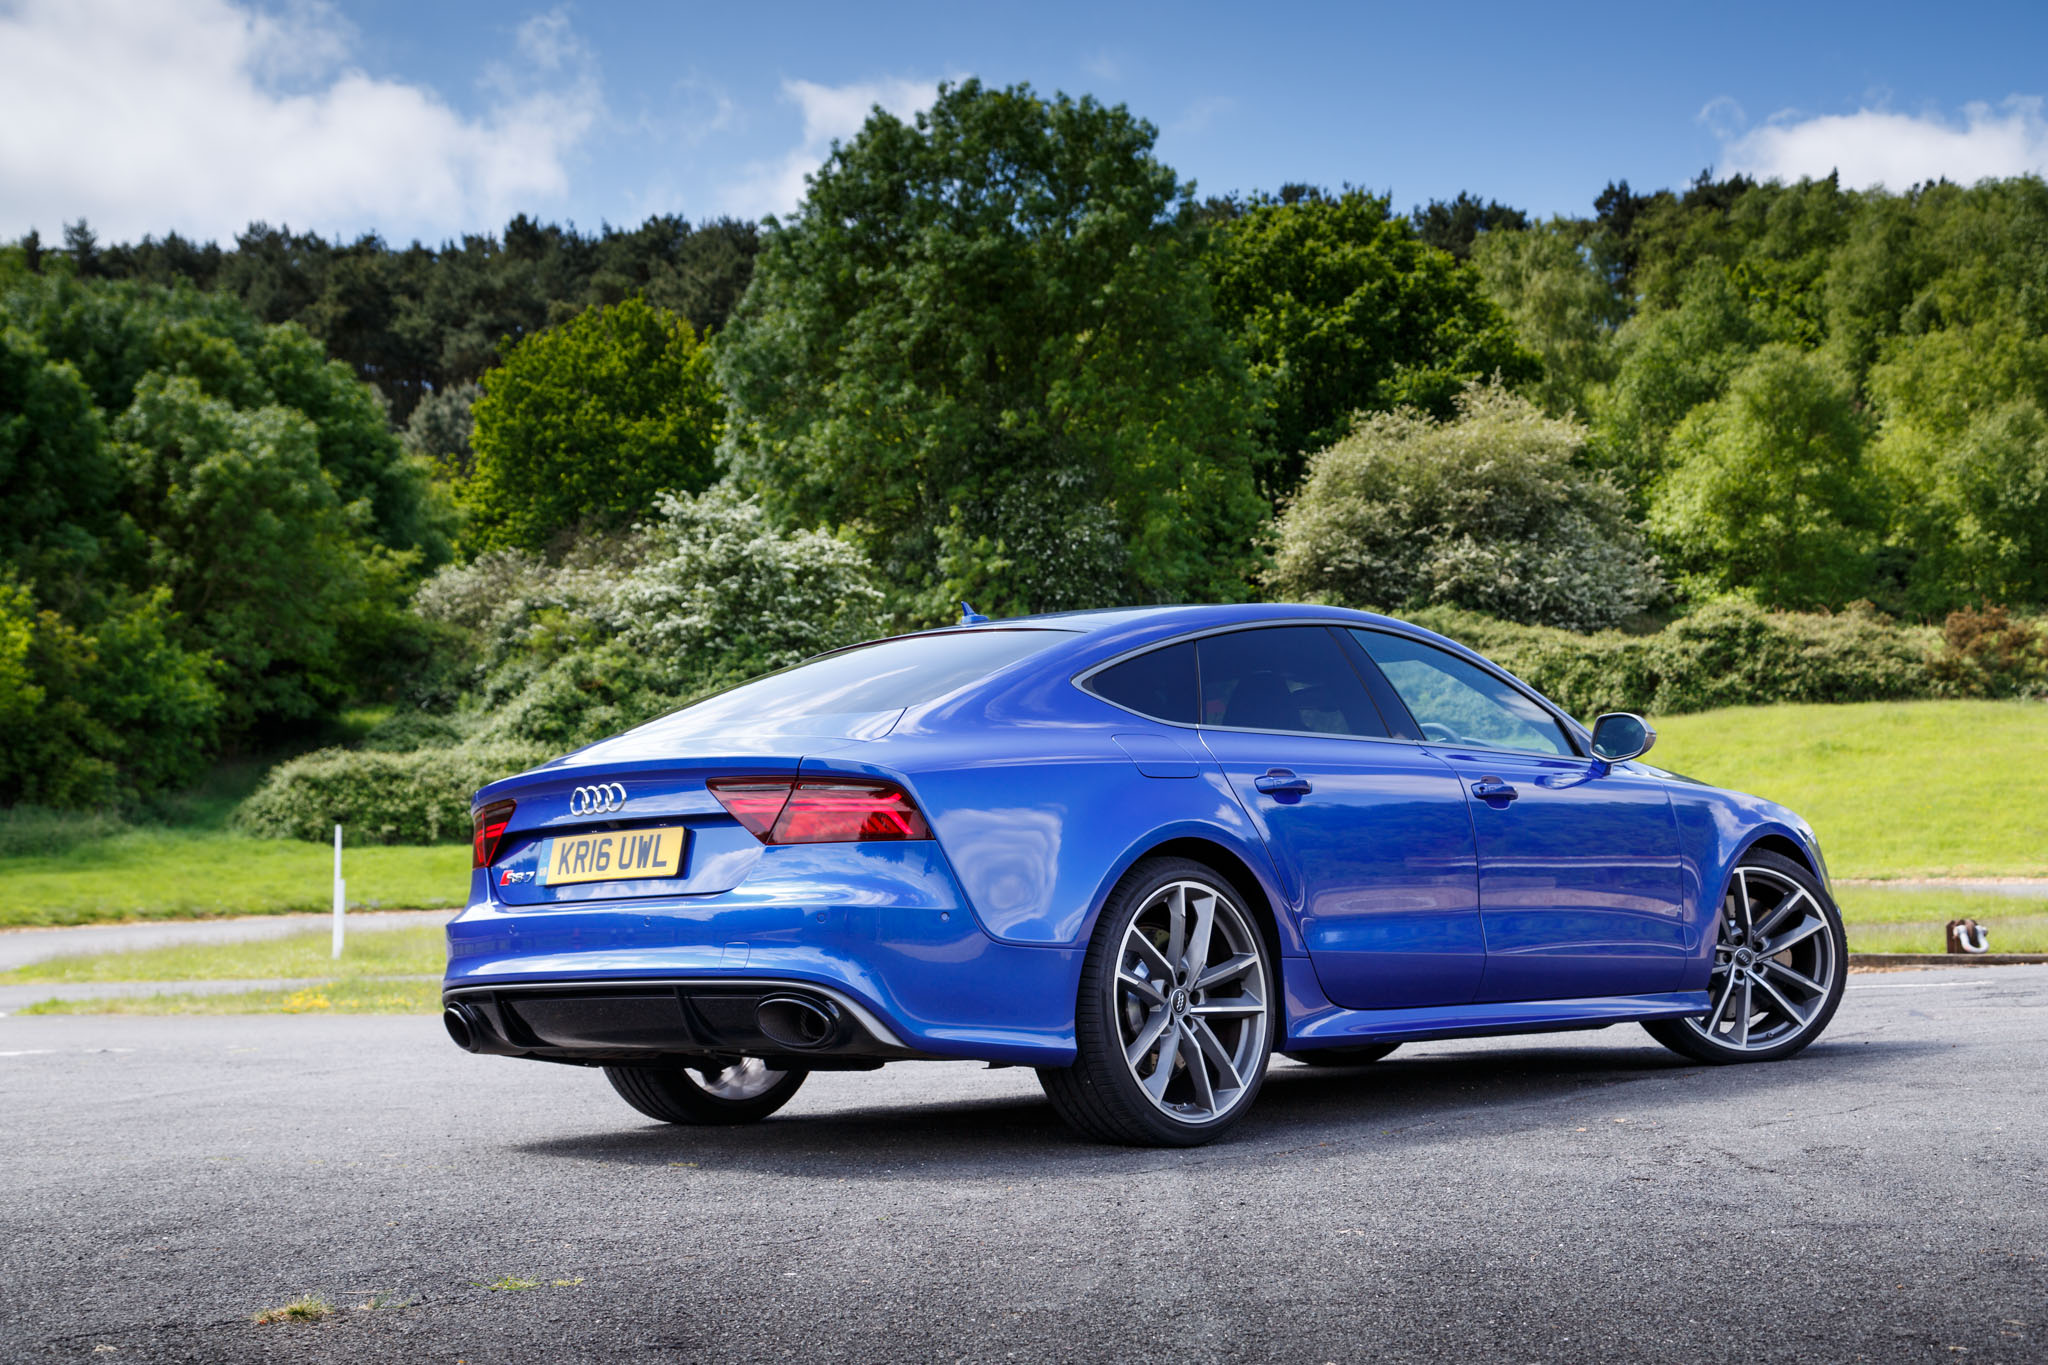 2016 audi rs7 sportback review the best sounding audi available. Black Bedroom Furniture Sets. Home Design Ideas